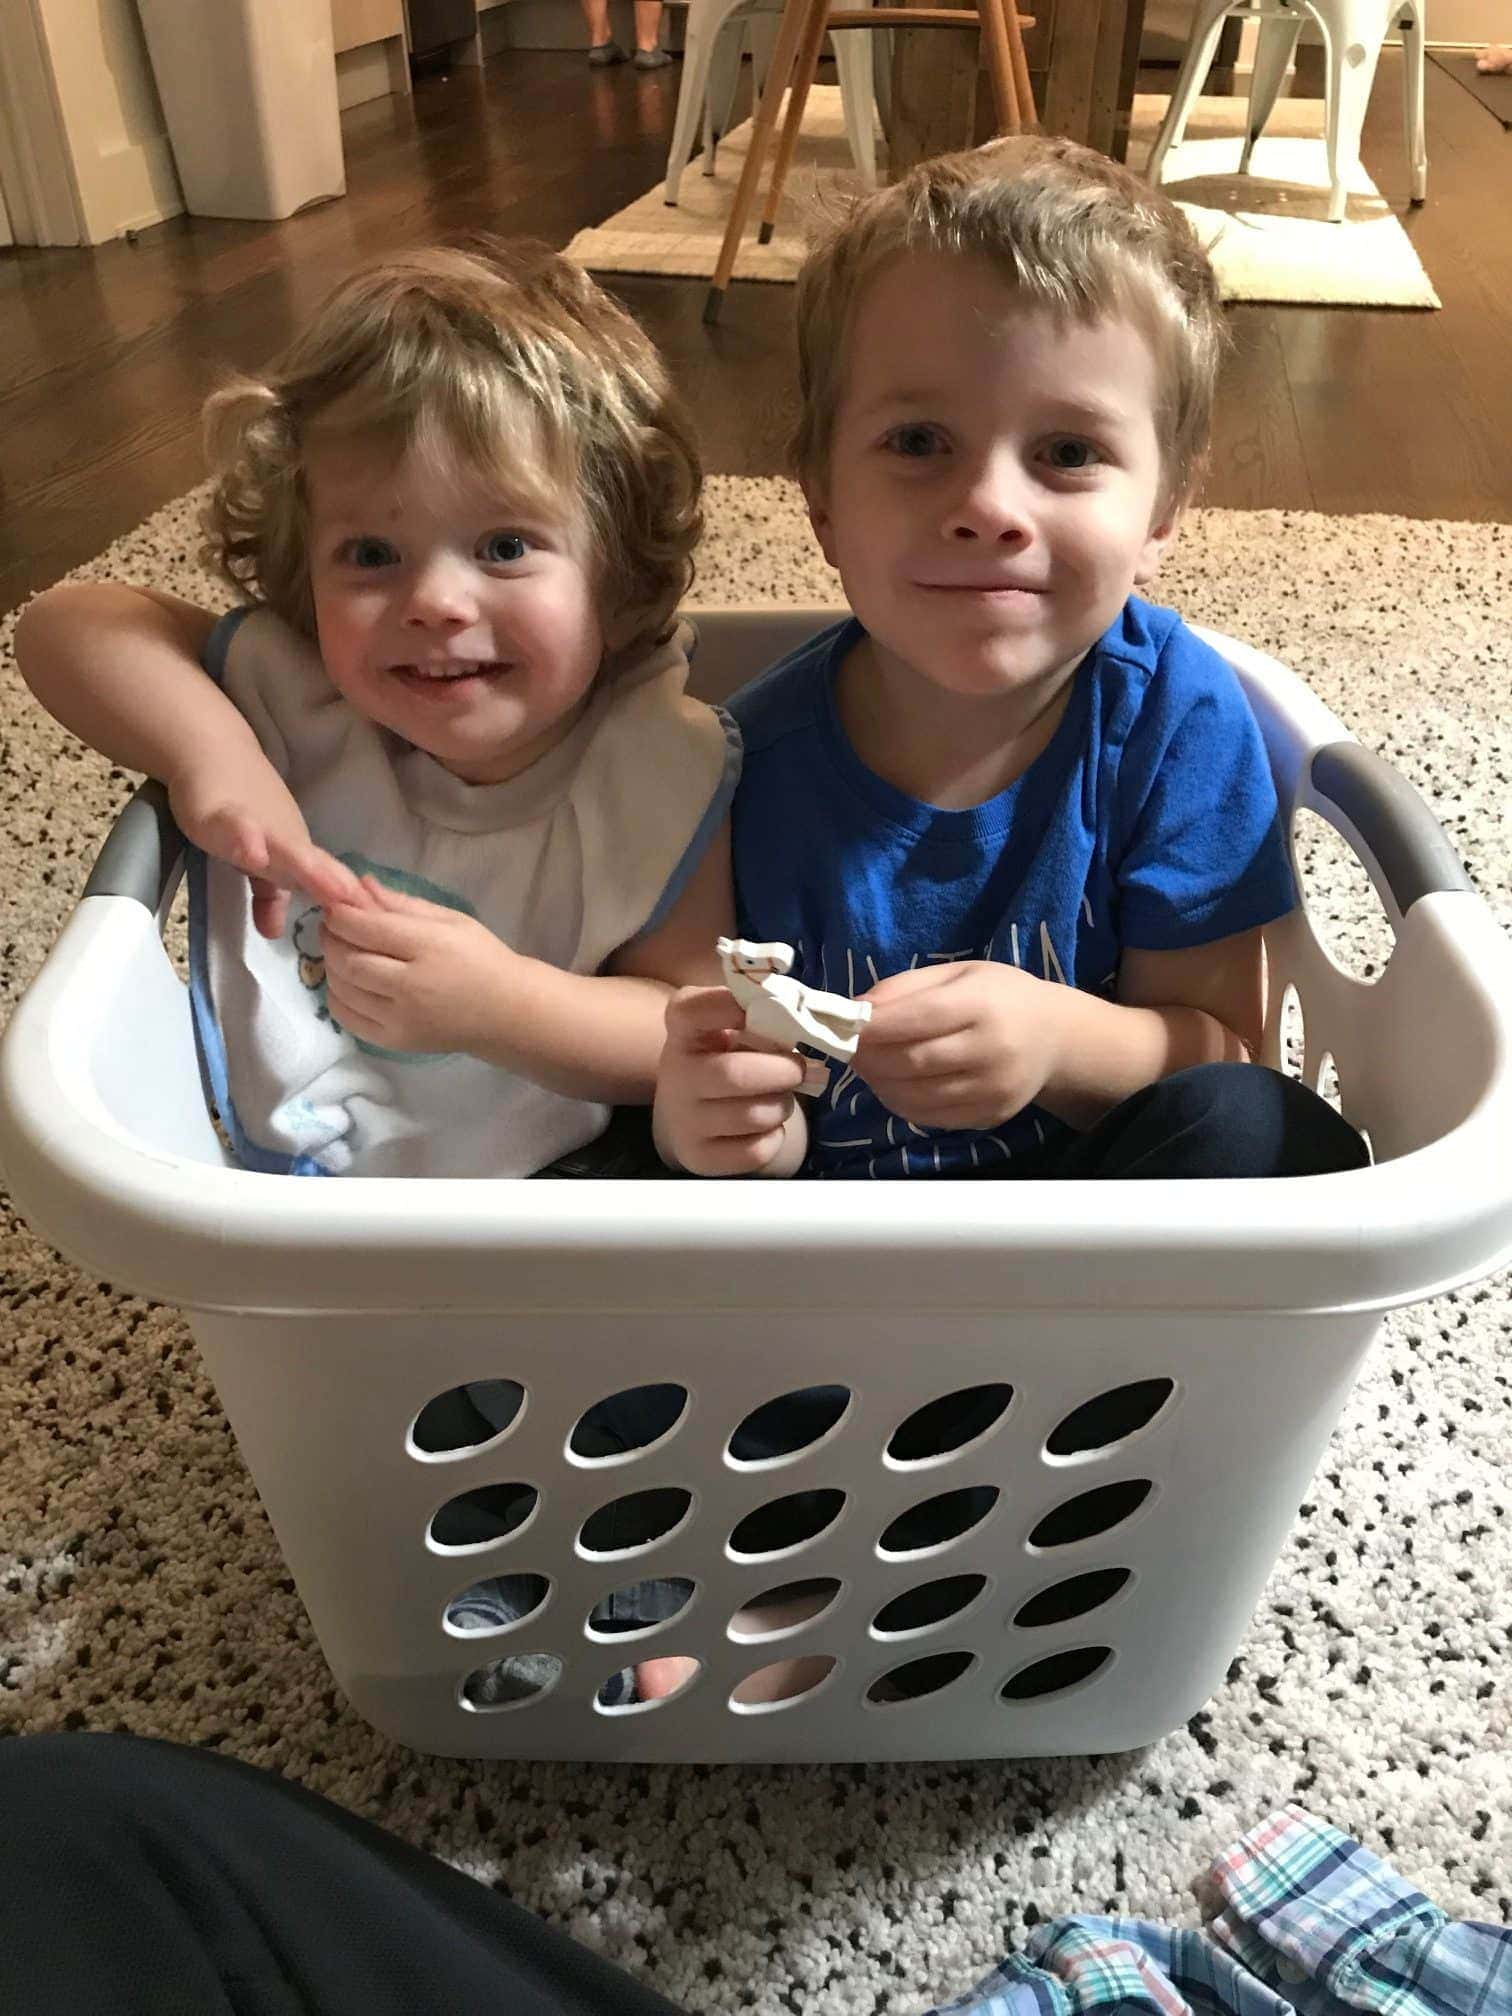 Eddie and Blake in a laundry basket